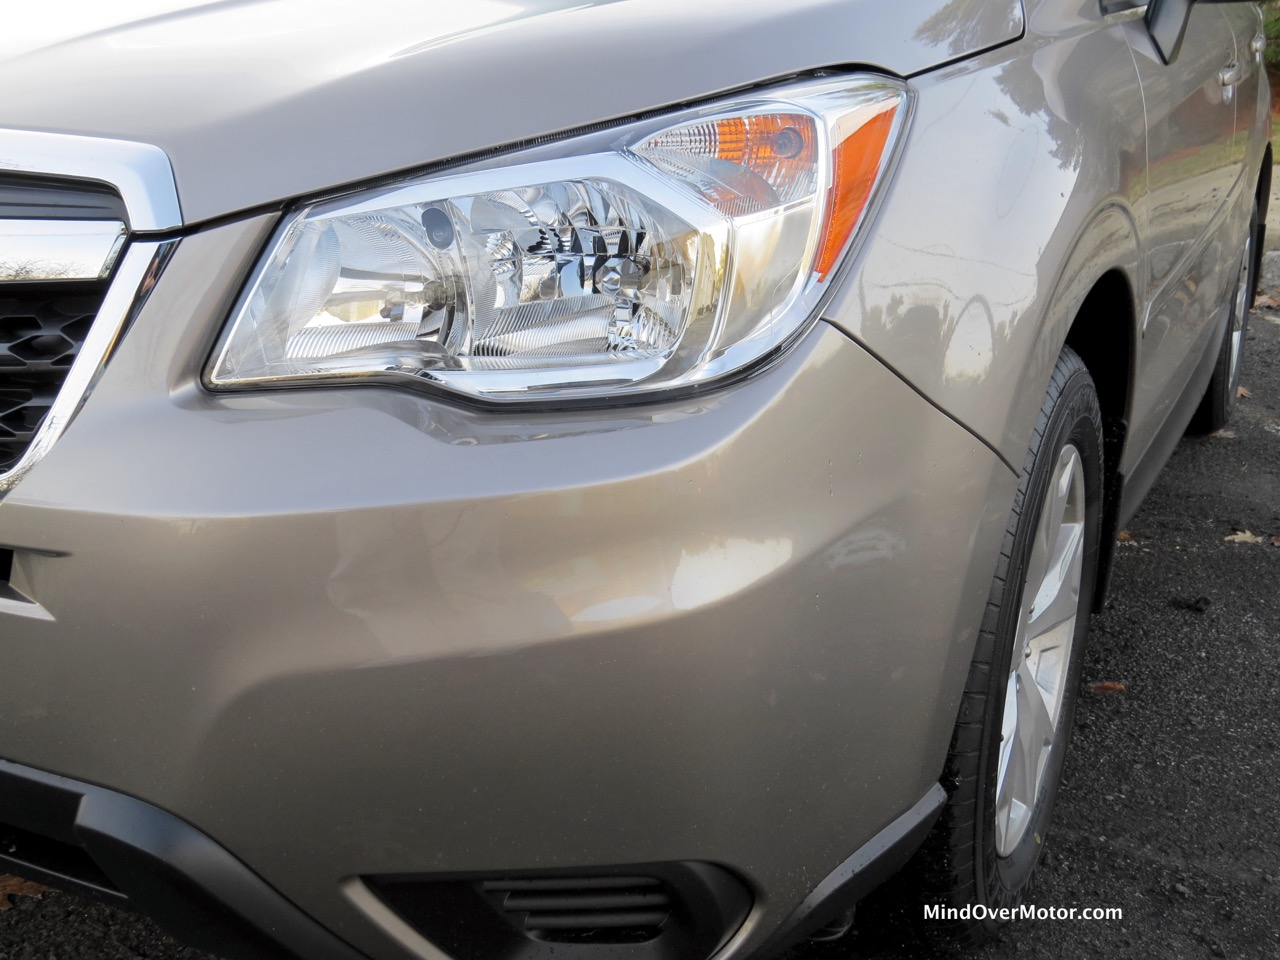 2015 Subaru Forester Headlight